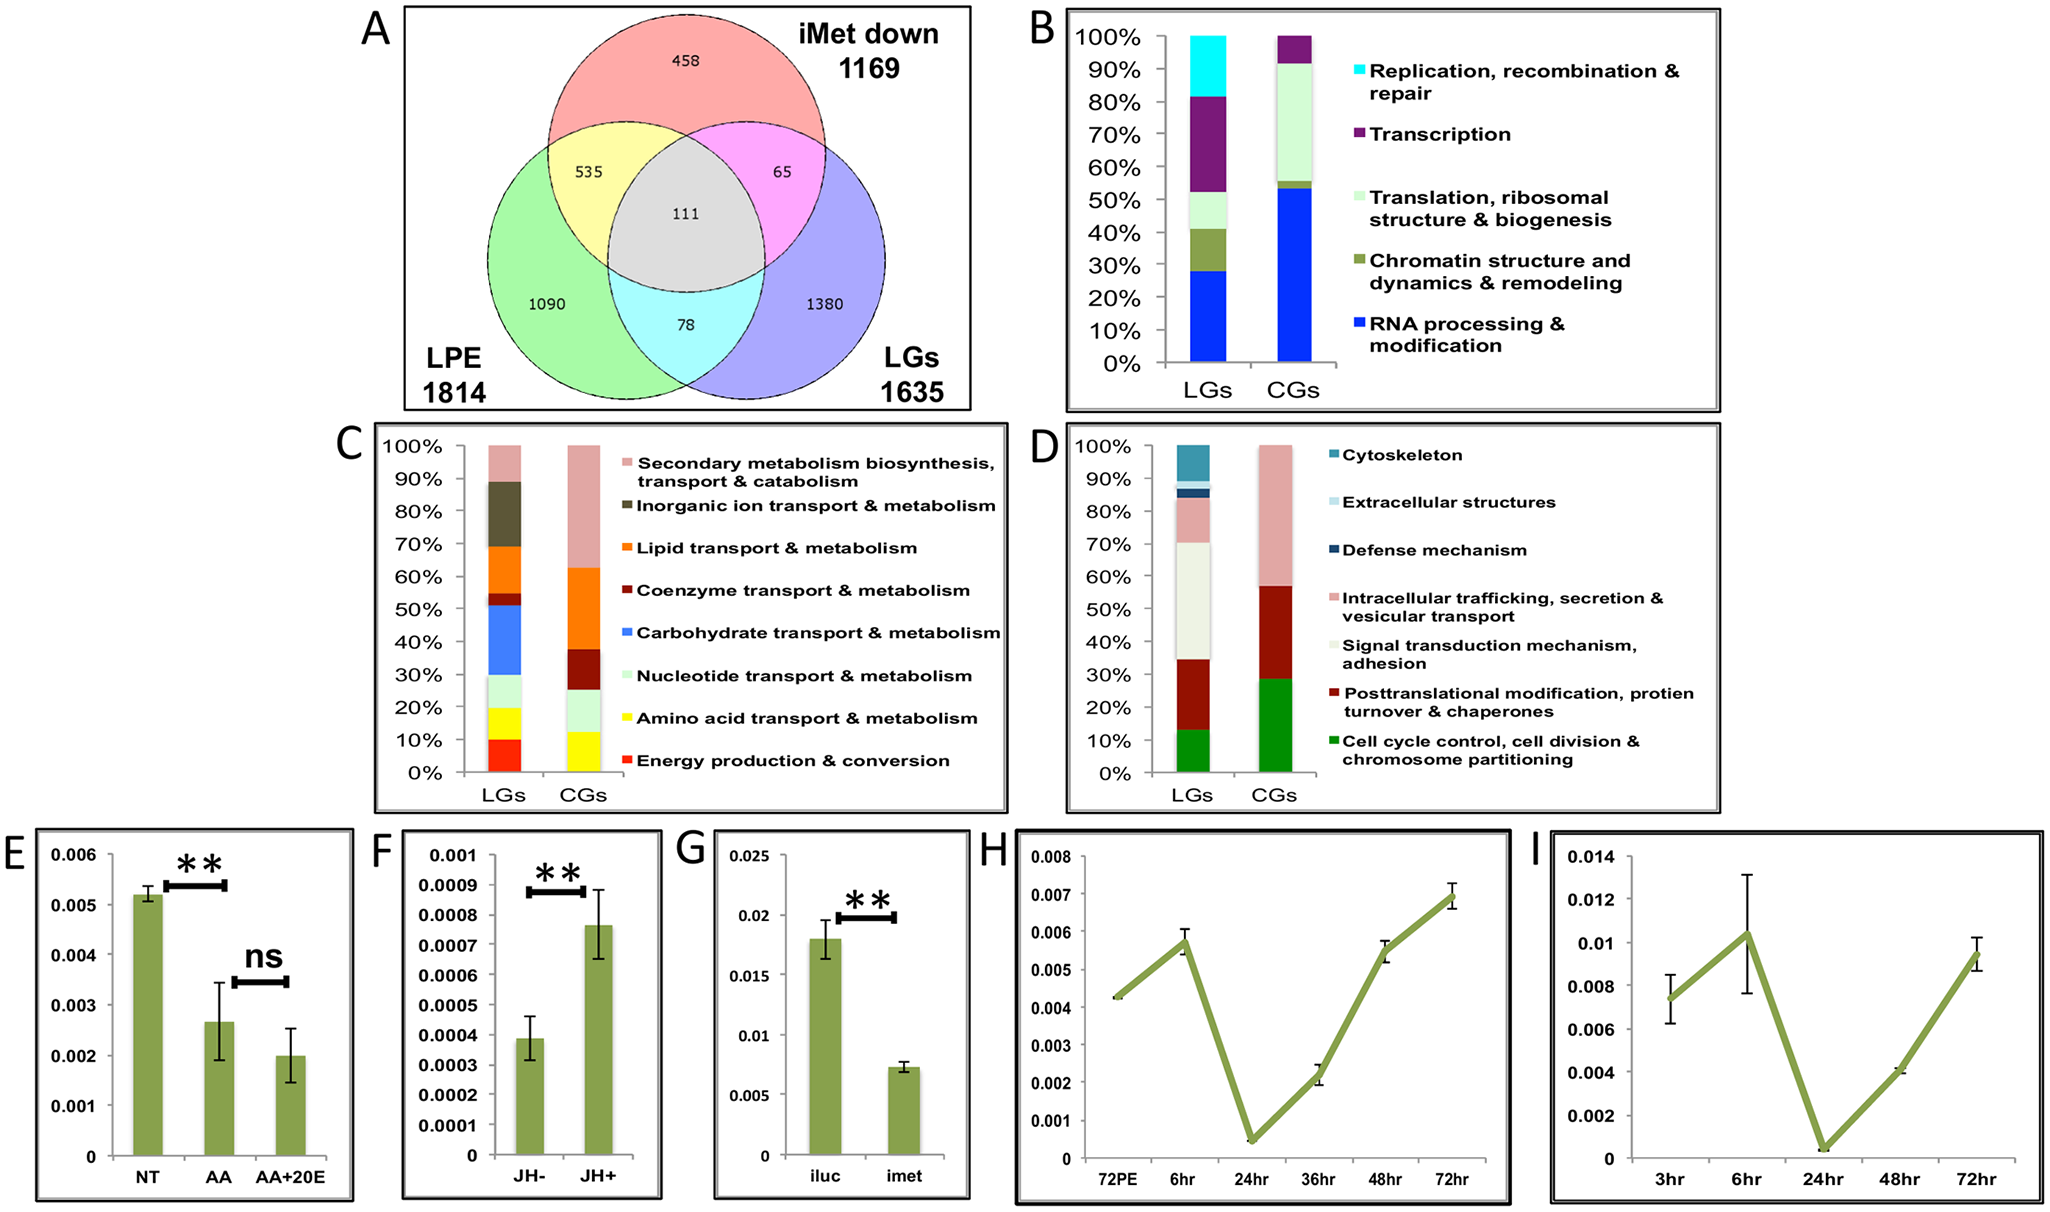 Genes cyclically activated by JH through Met—Functional group enrichment and the effects of AAs, 20E and JH.